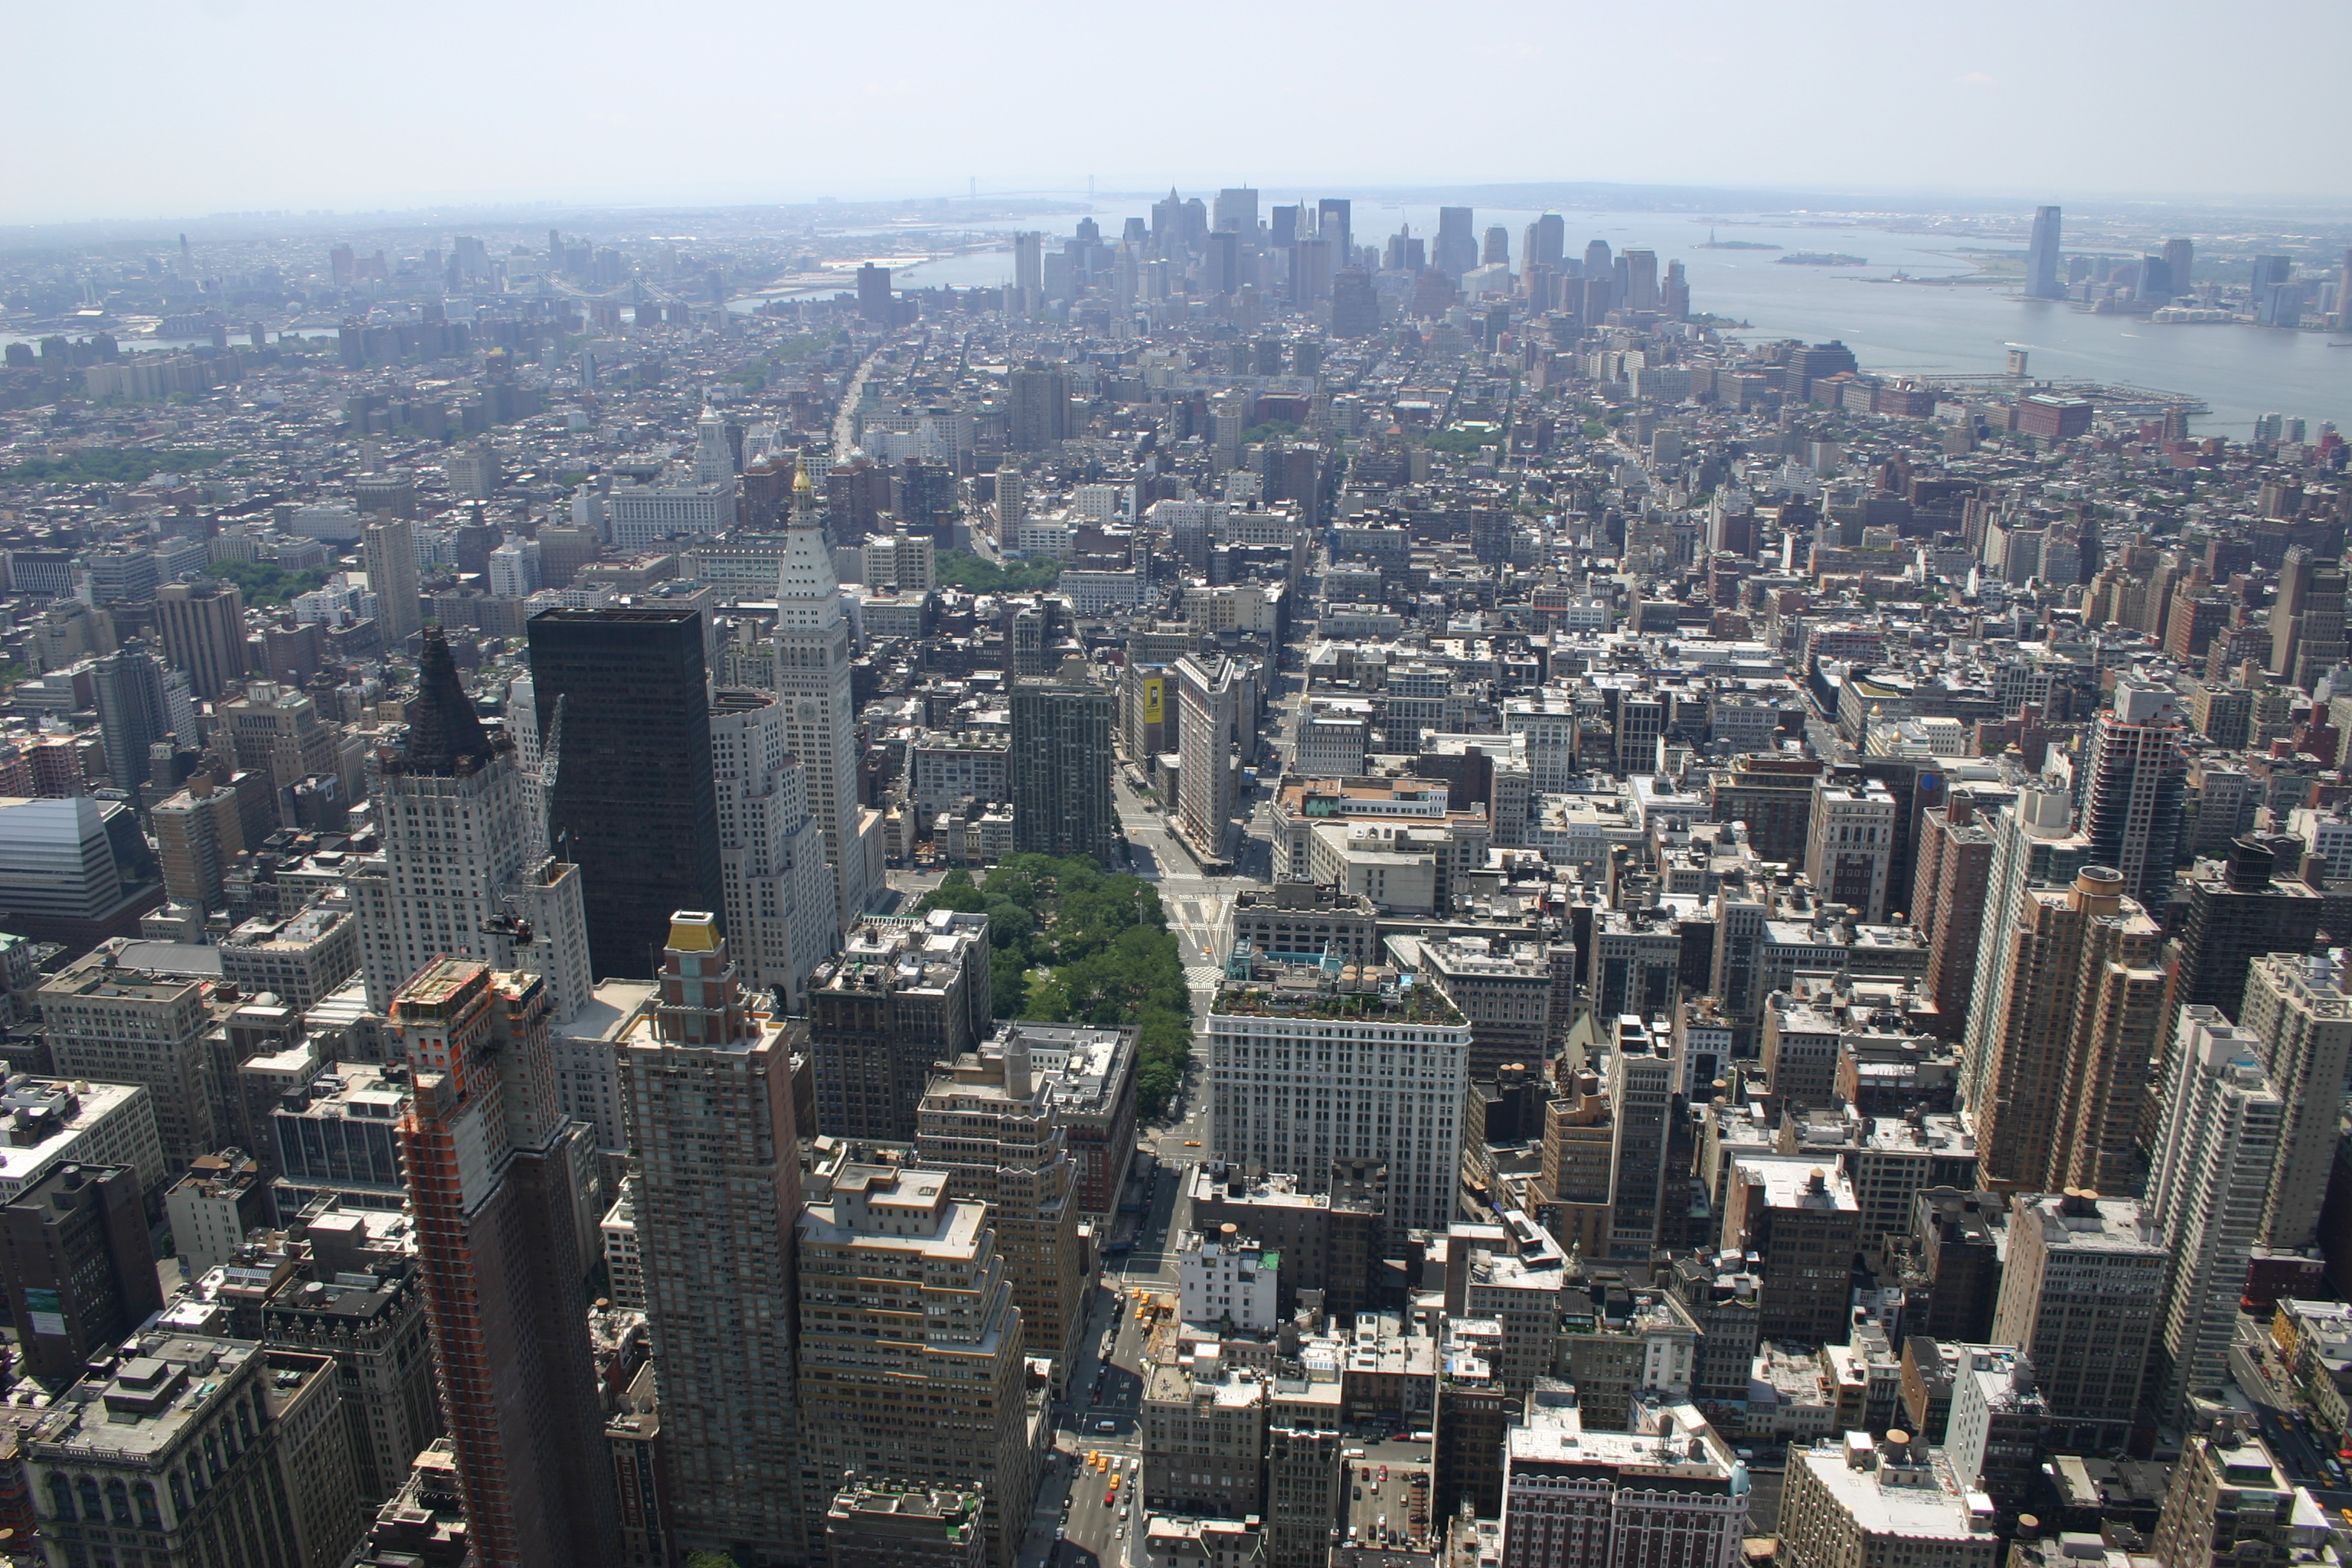 View of NYC from the Empire State Building